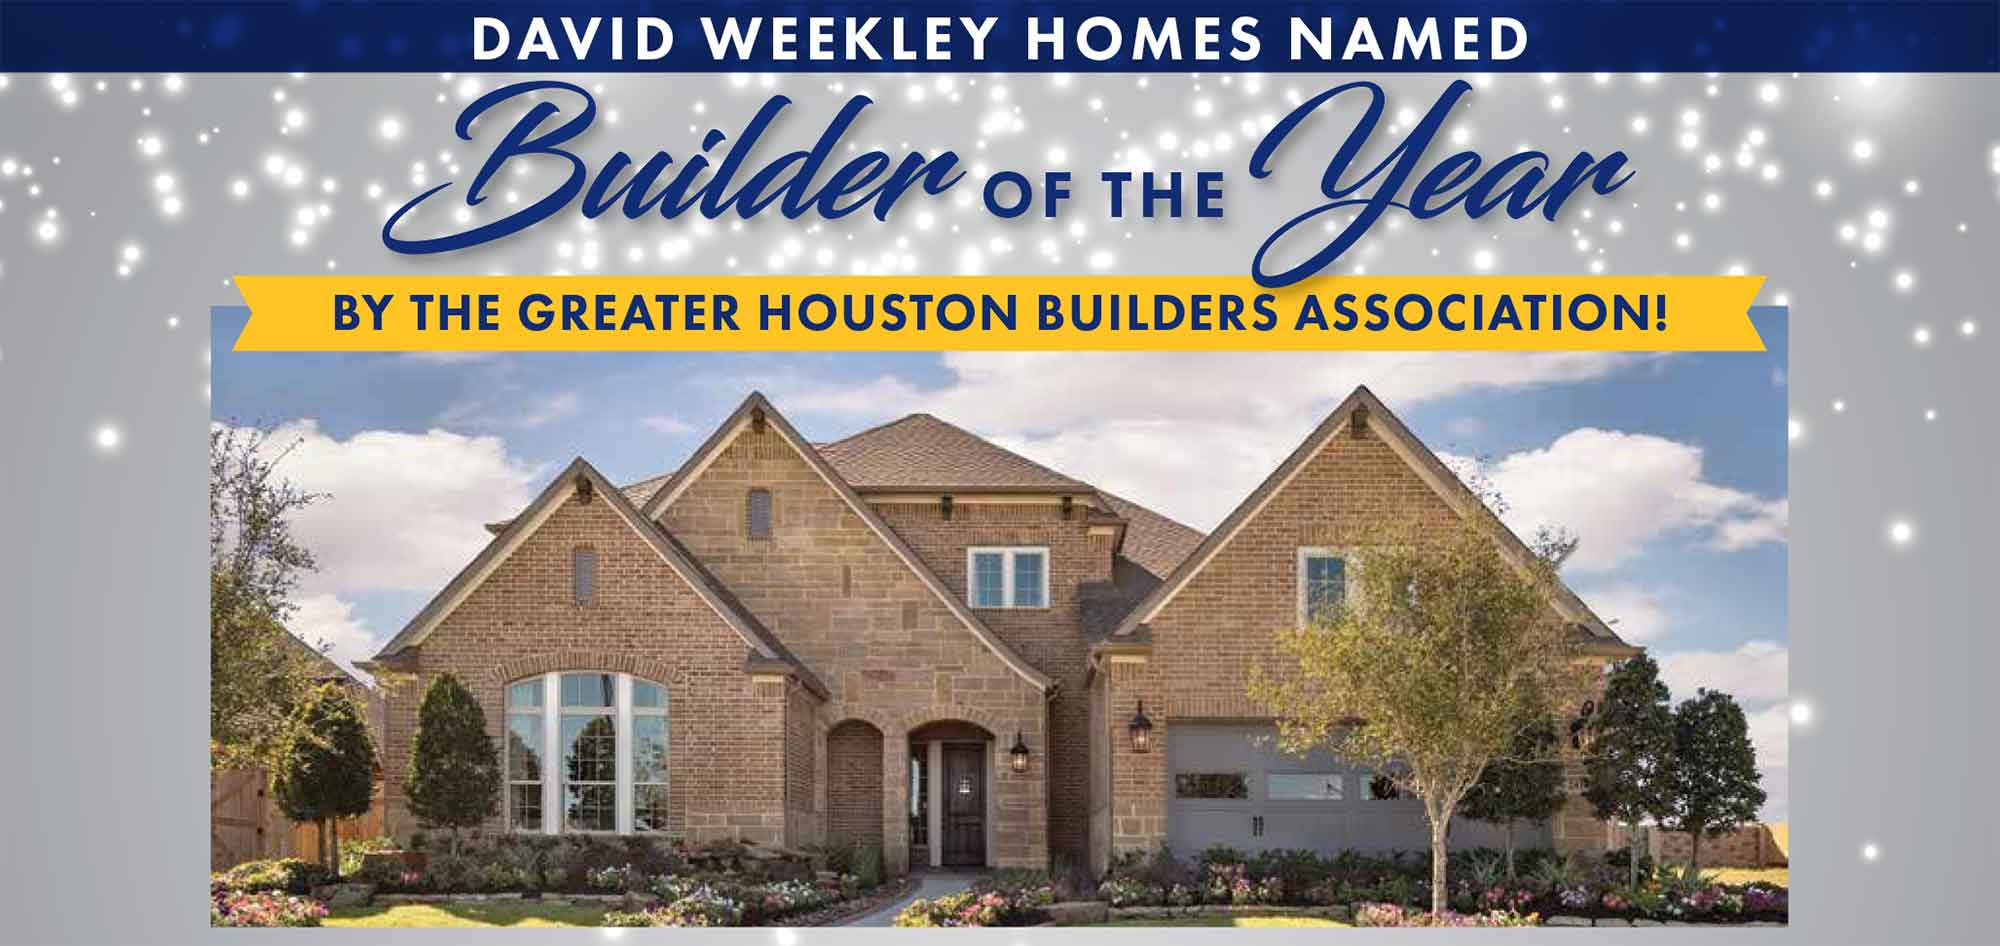 David Weekley Homes Wins Builder of the Year in Houston!